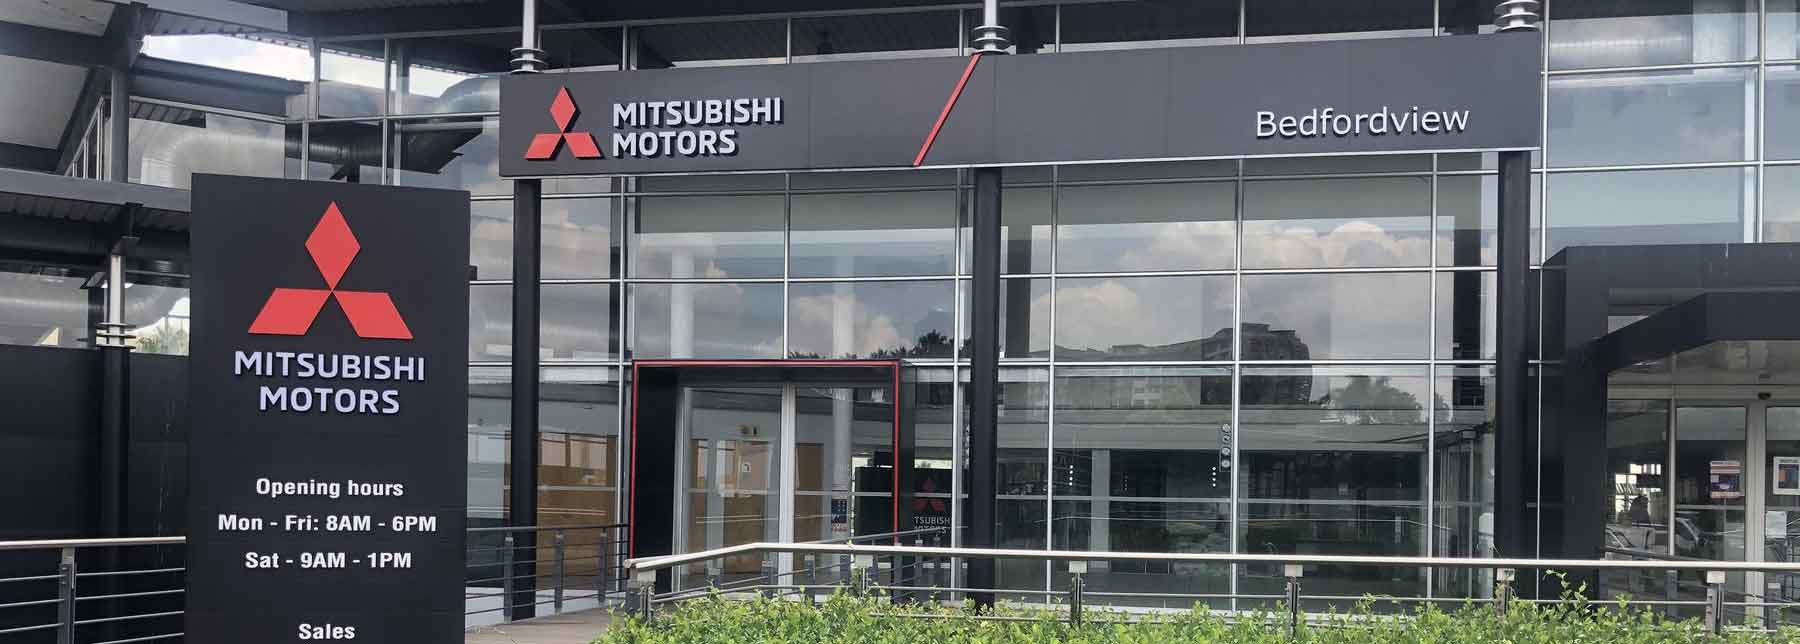 New corporate and visual identity for all Mitsubishi dealerships